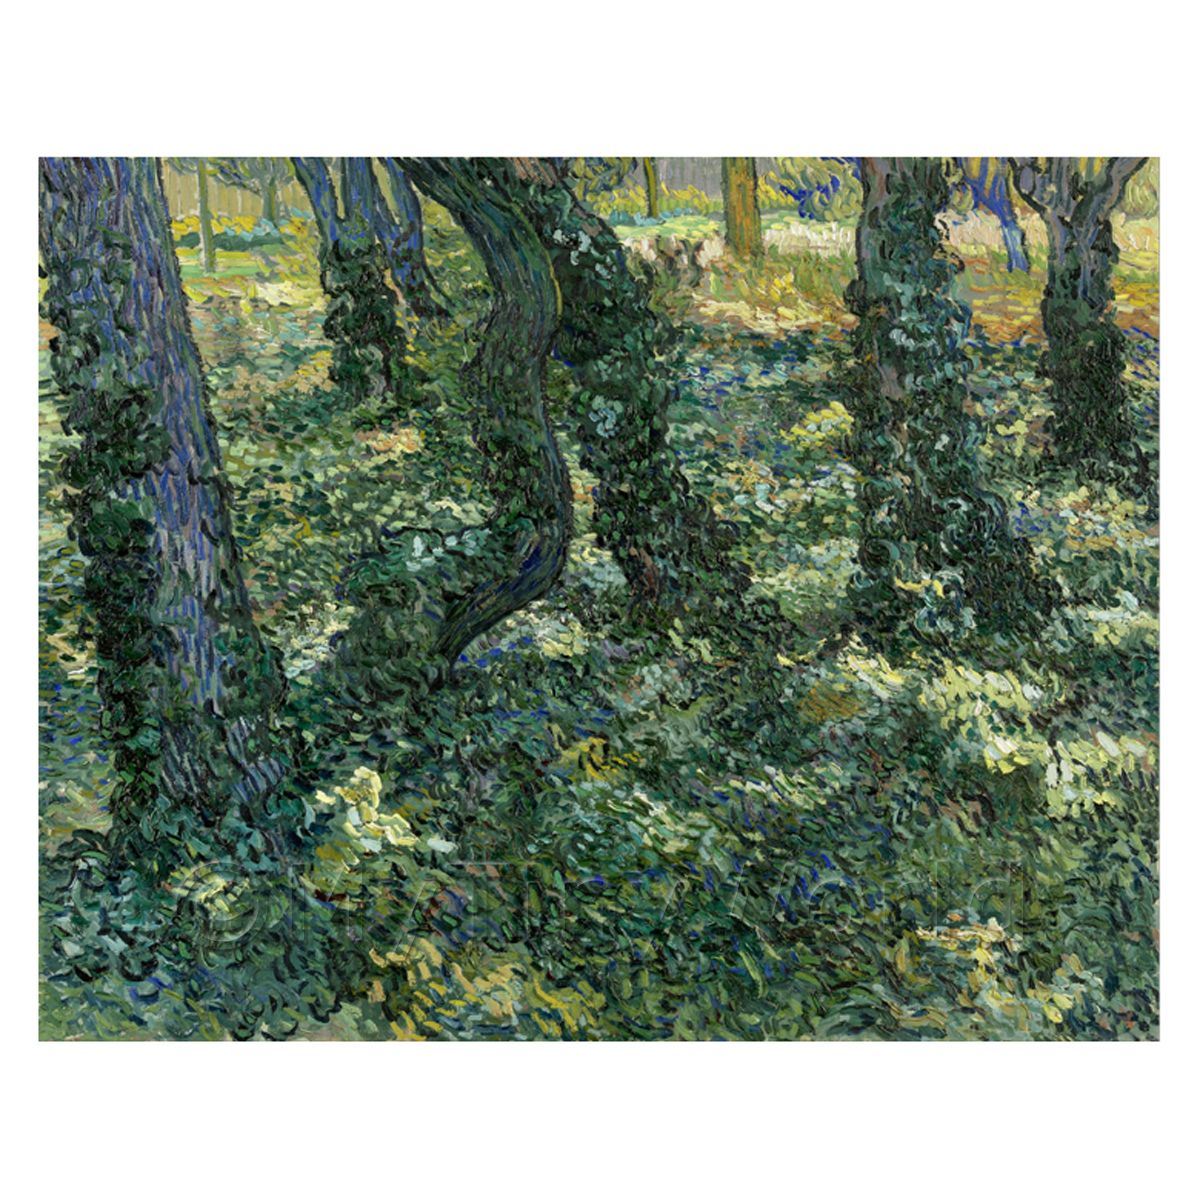 Van Gogh Painting Undergrowth (Forest)